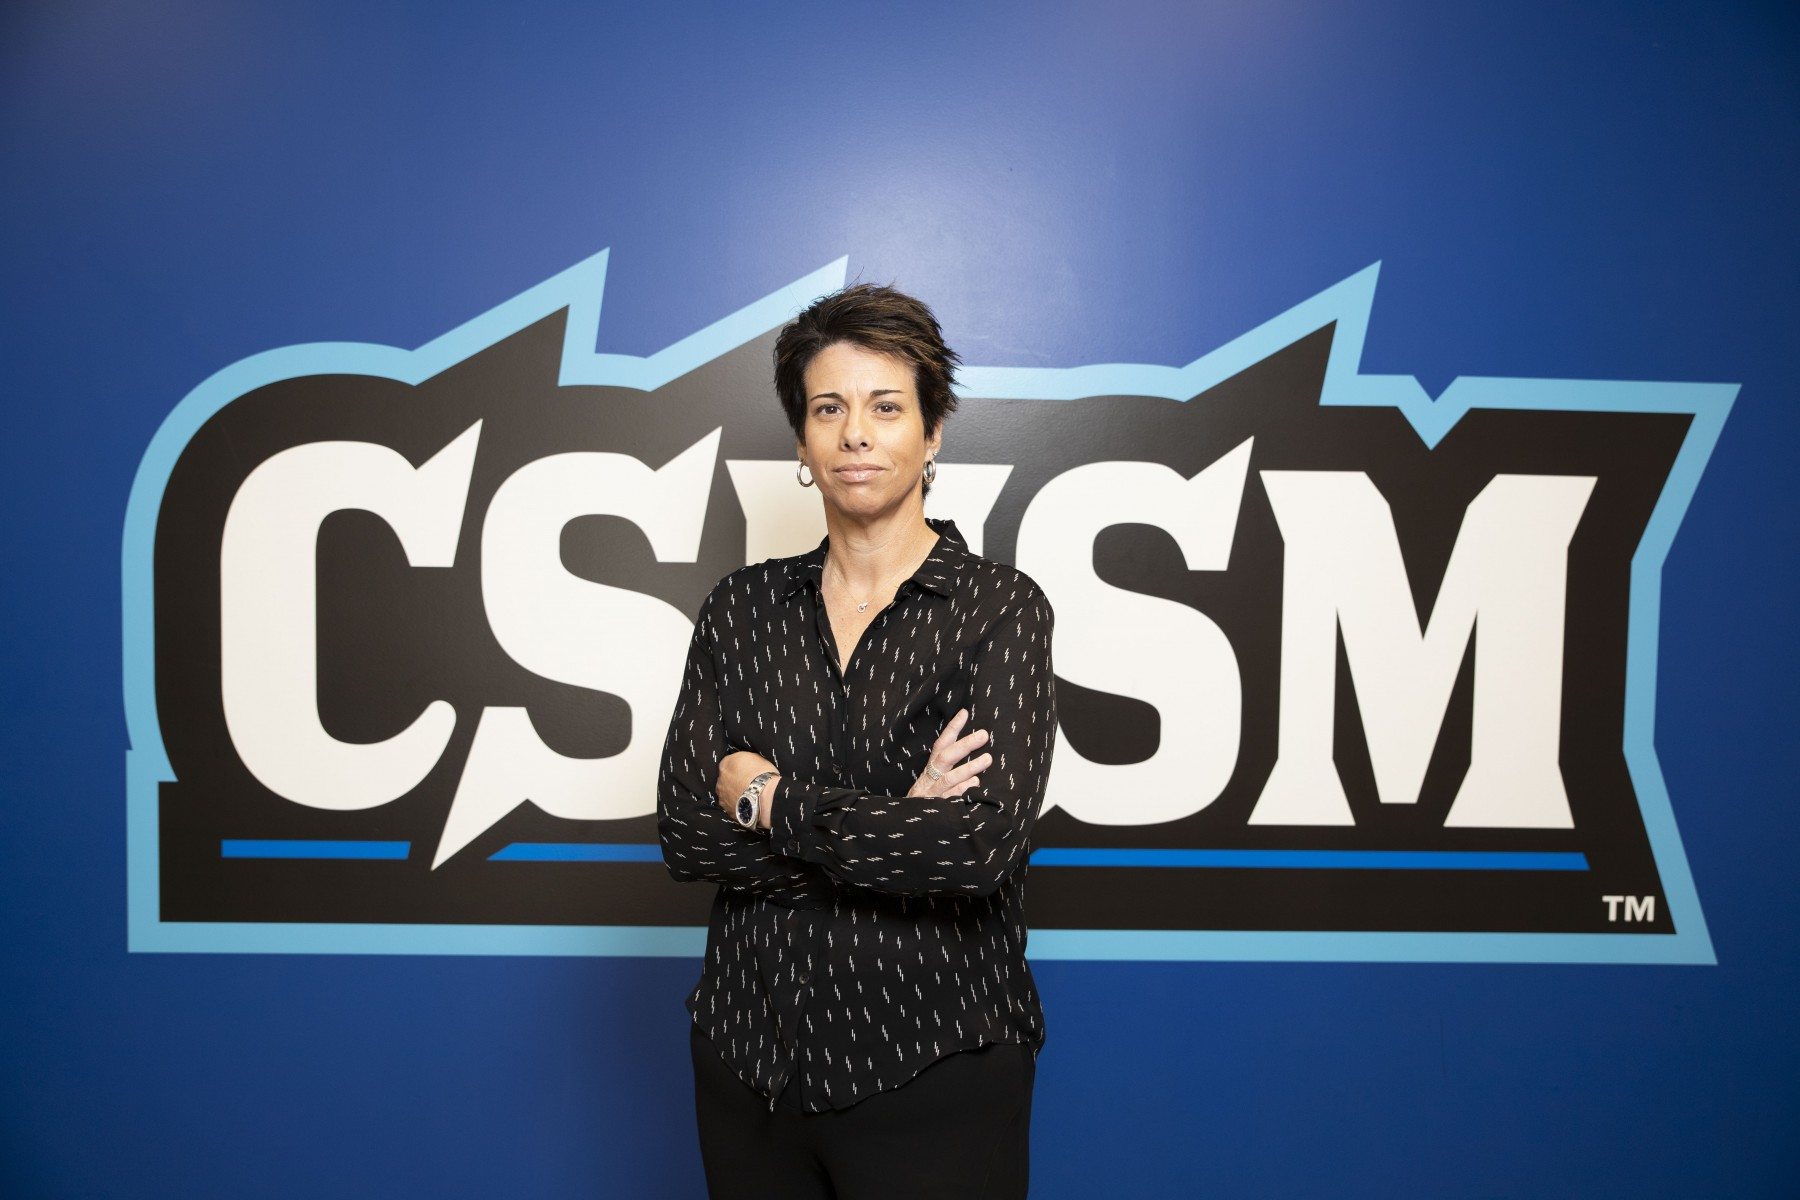 Jennifer Milo is in her ninth year as CSUSM's director of athletics after the university originally hired her as its first softball coach.